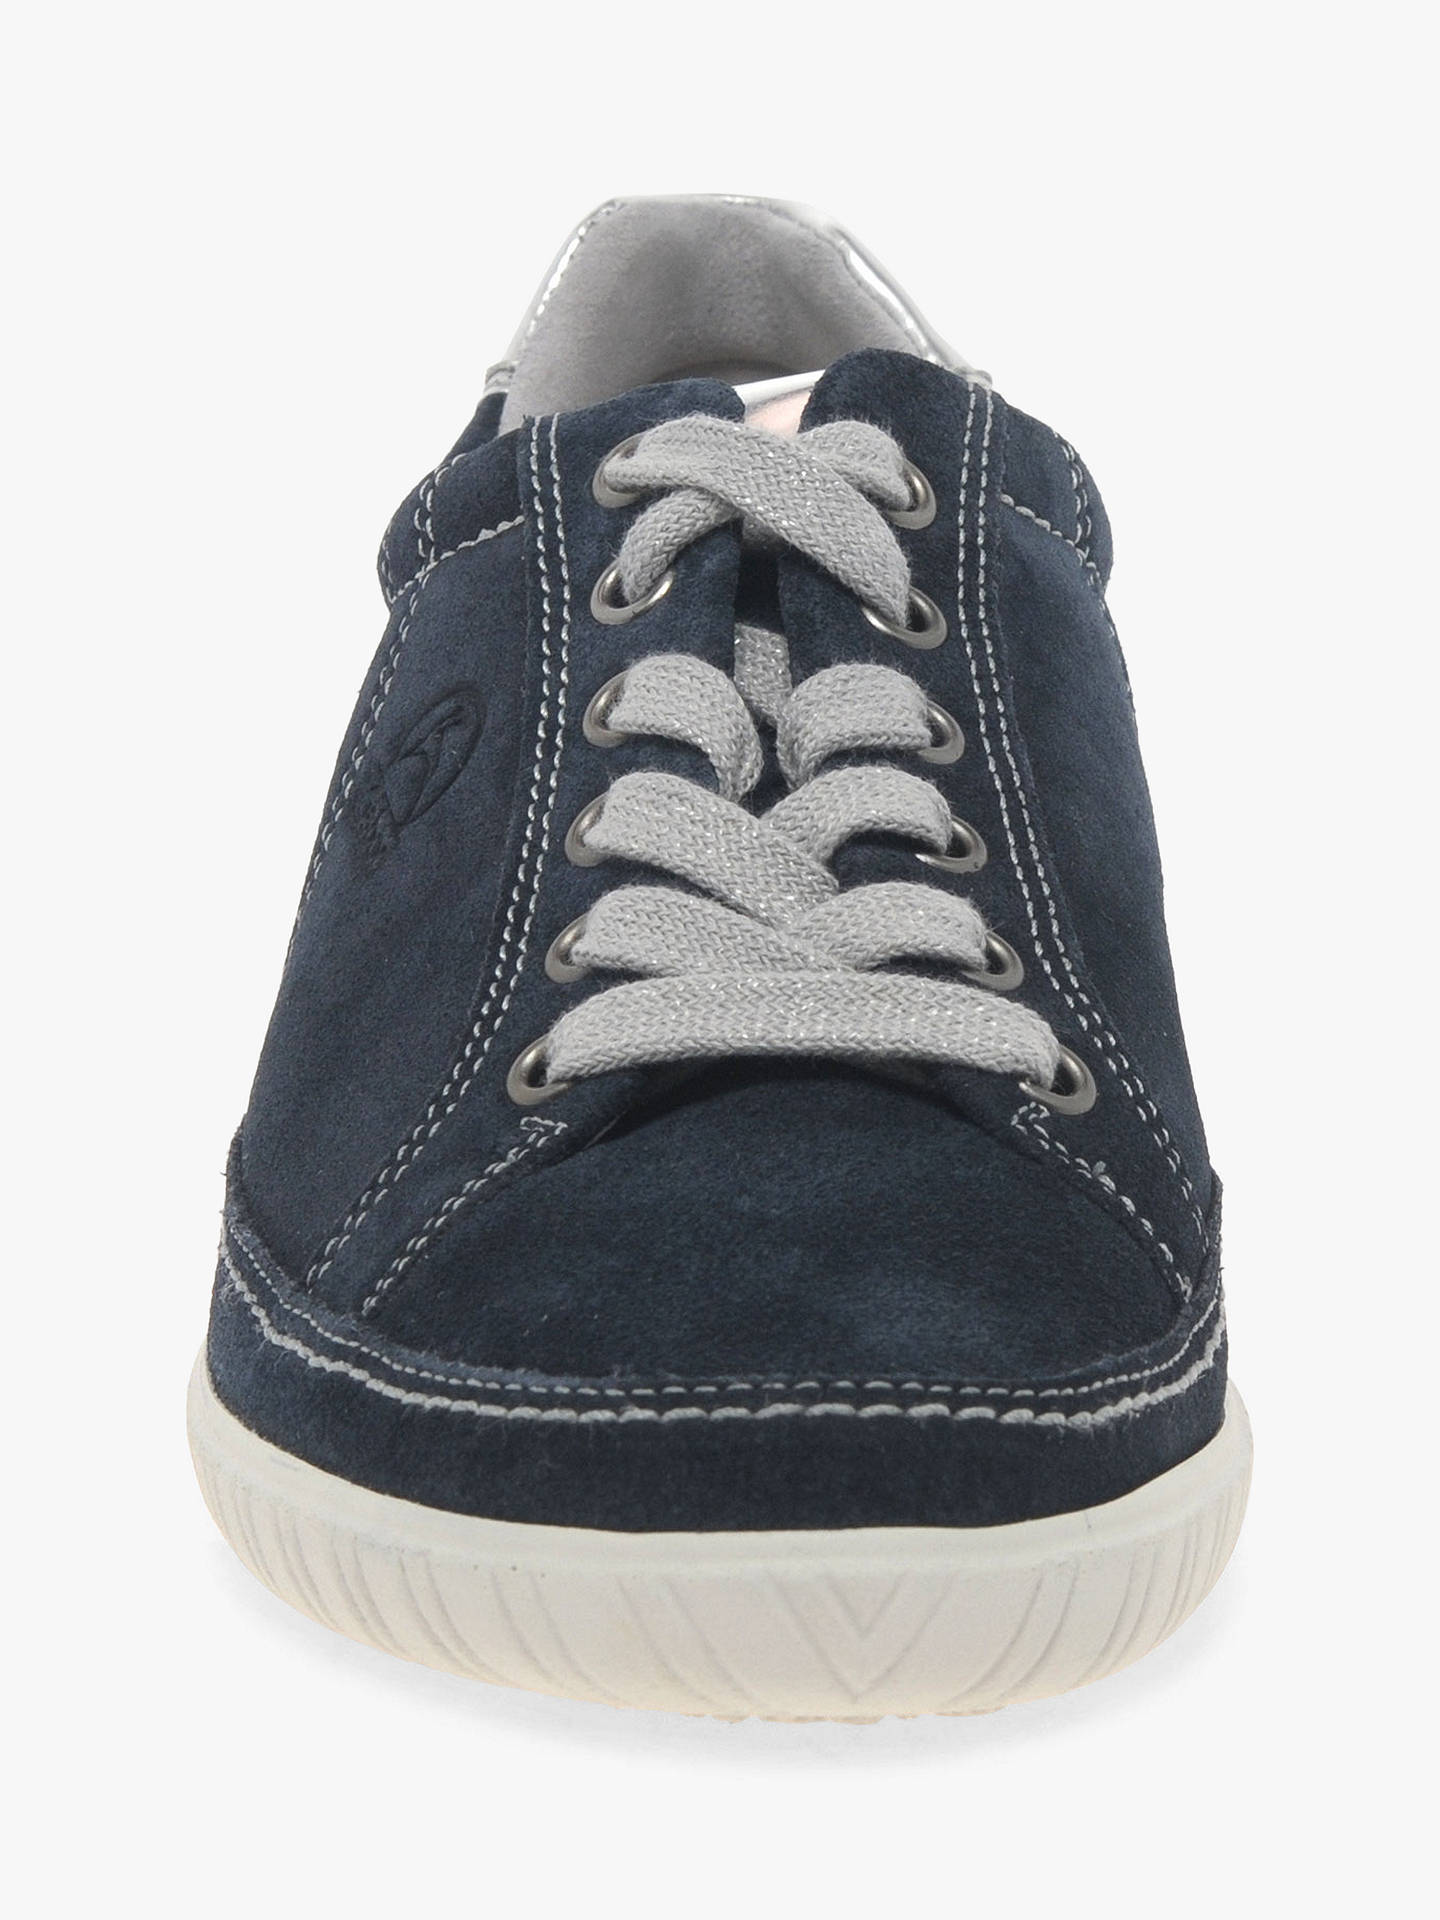 6668b08923e08 ... Buy Gabor Amulet Wide Fit Trainers, Navy Suede, 3 Online at  johnlewis.com ...